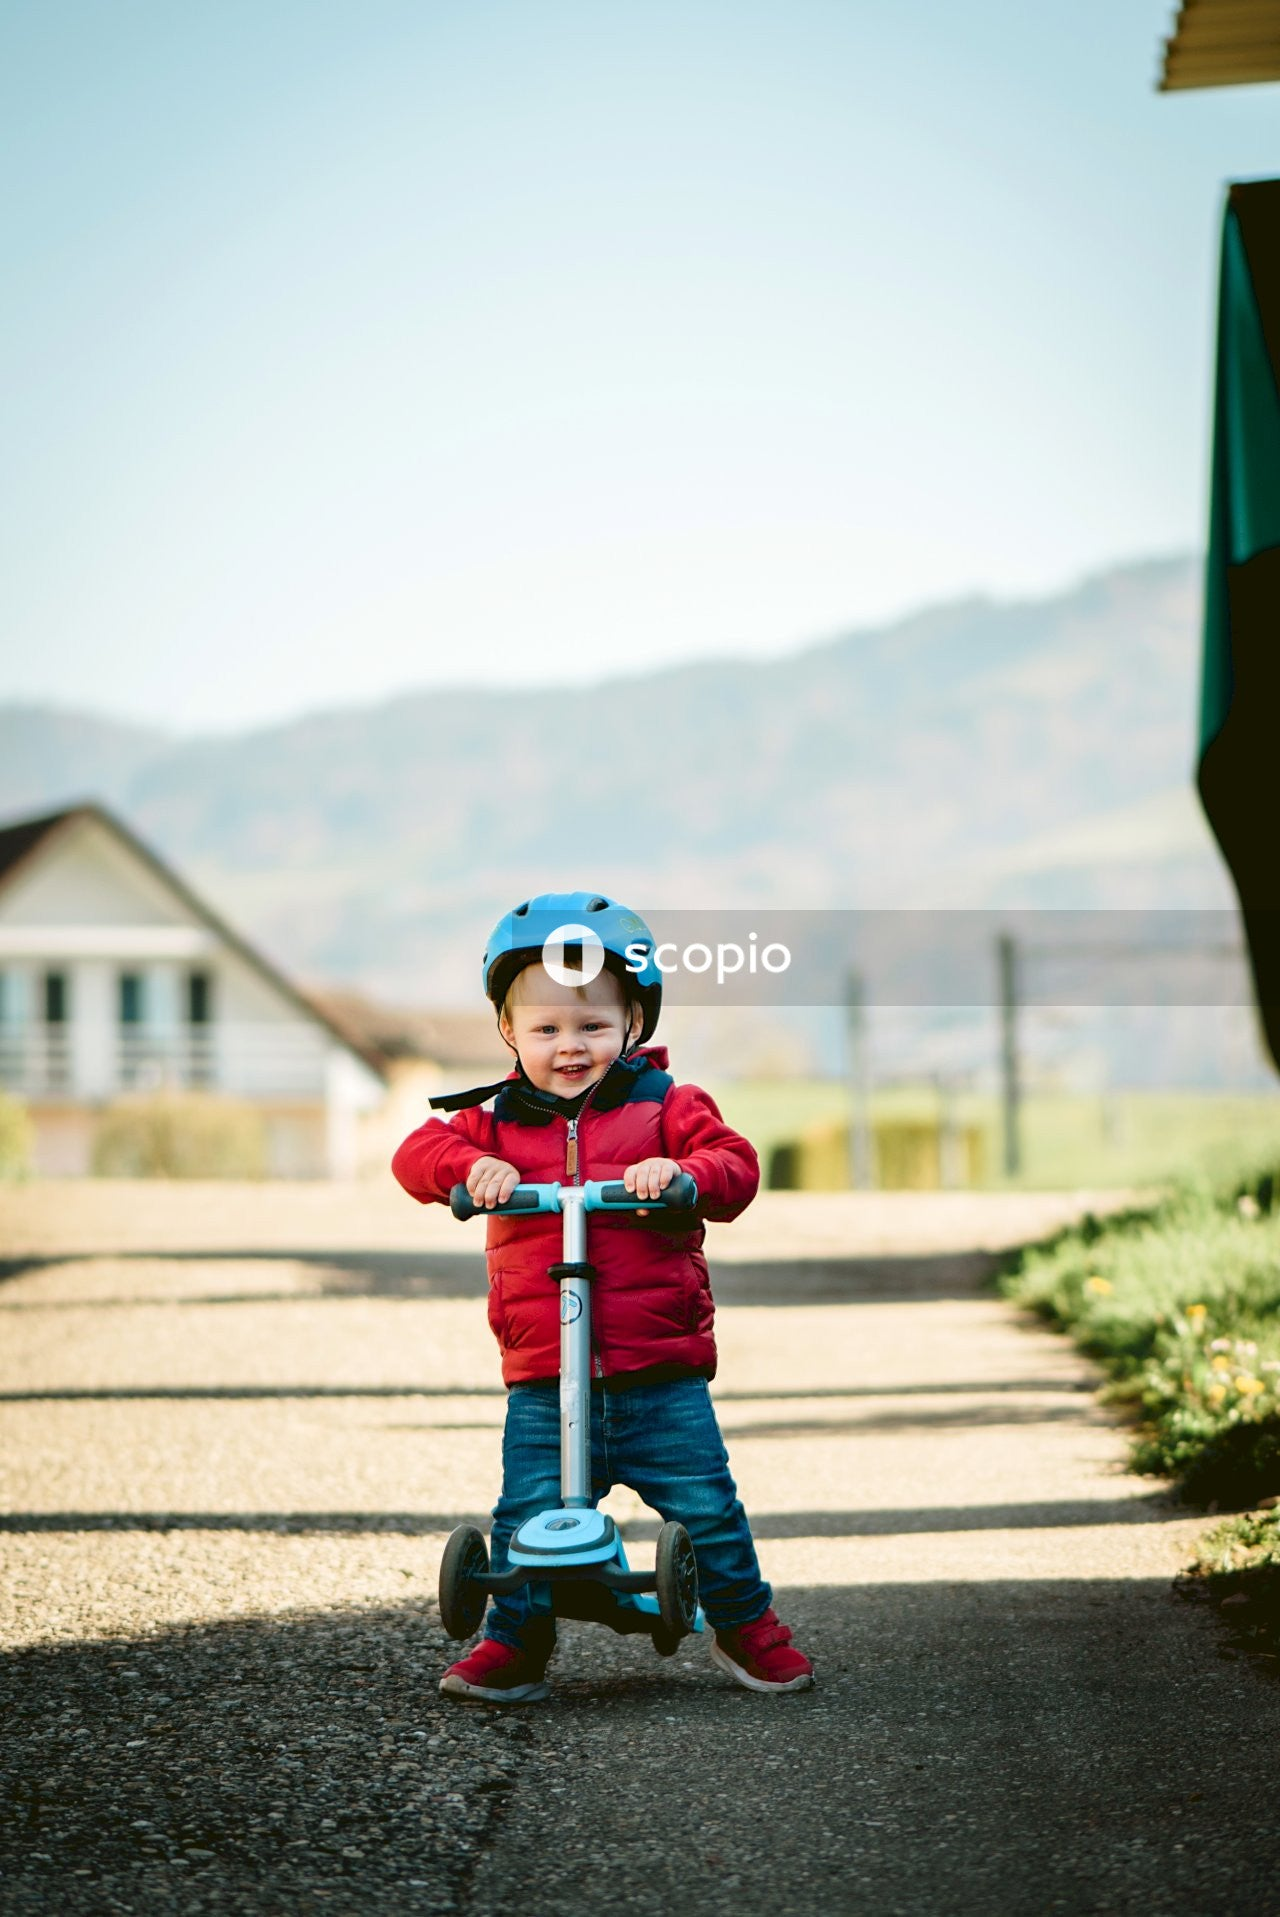 Child in red jacket and blue denim jeans riding on kick scooter